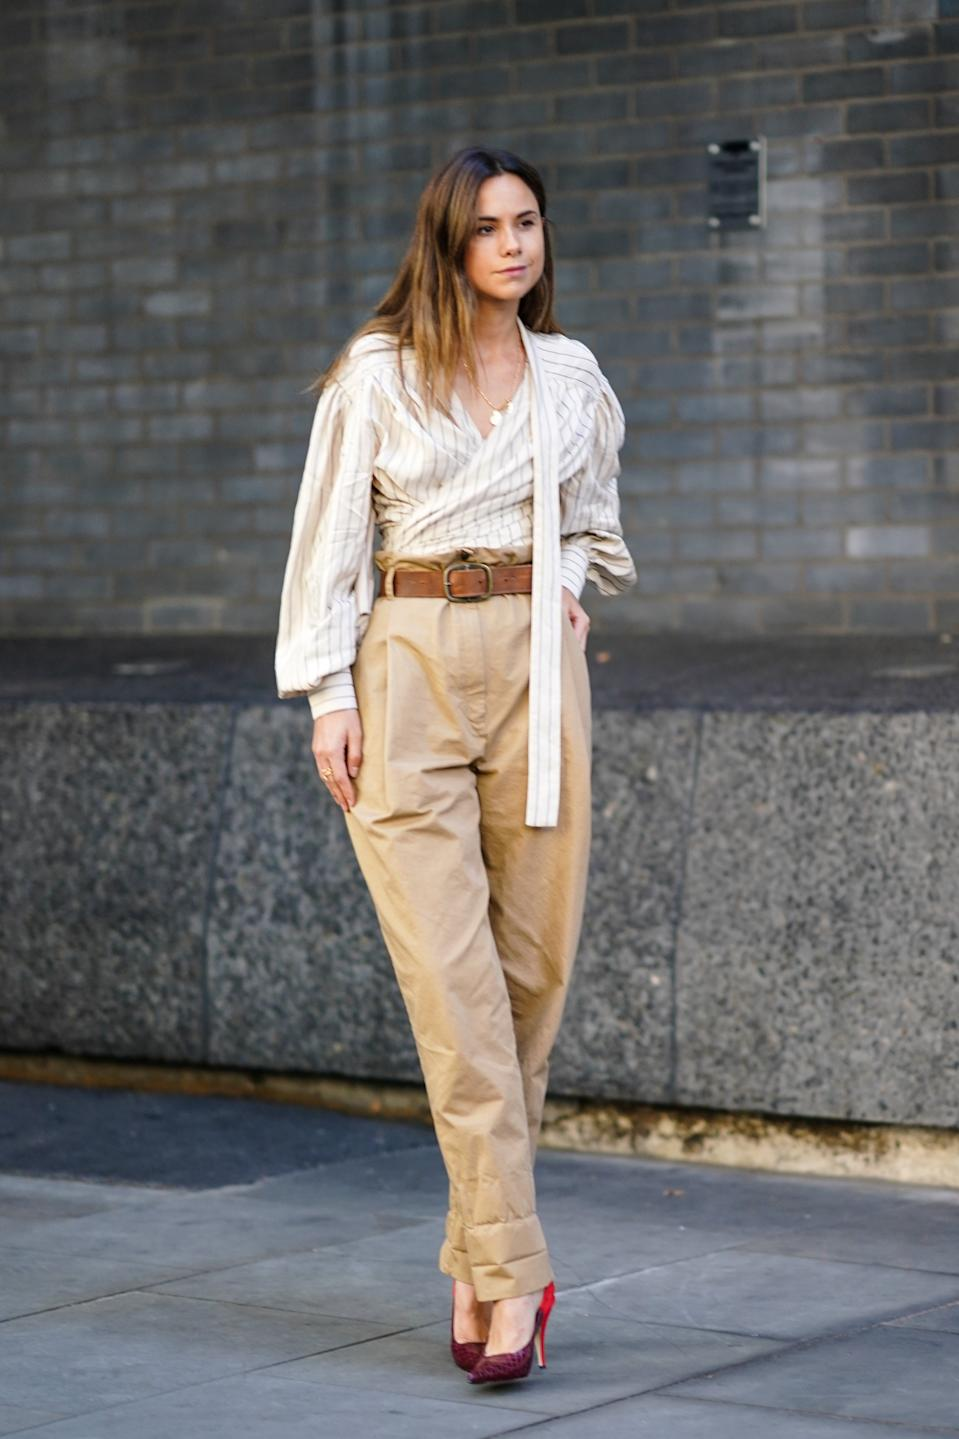 A guest is seen wearing high waisted brown trousers and a striped shirt. [Photo: Getty Images]